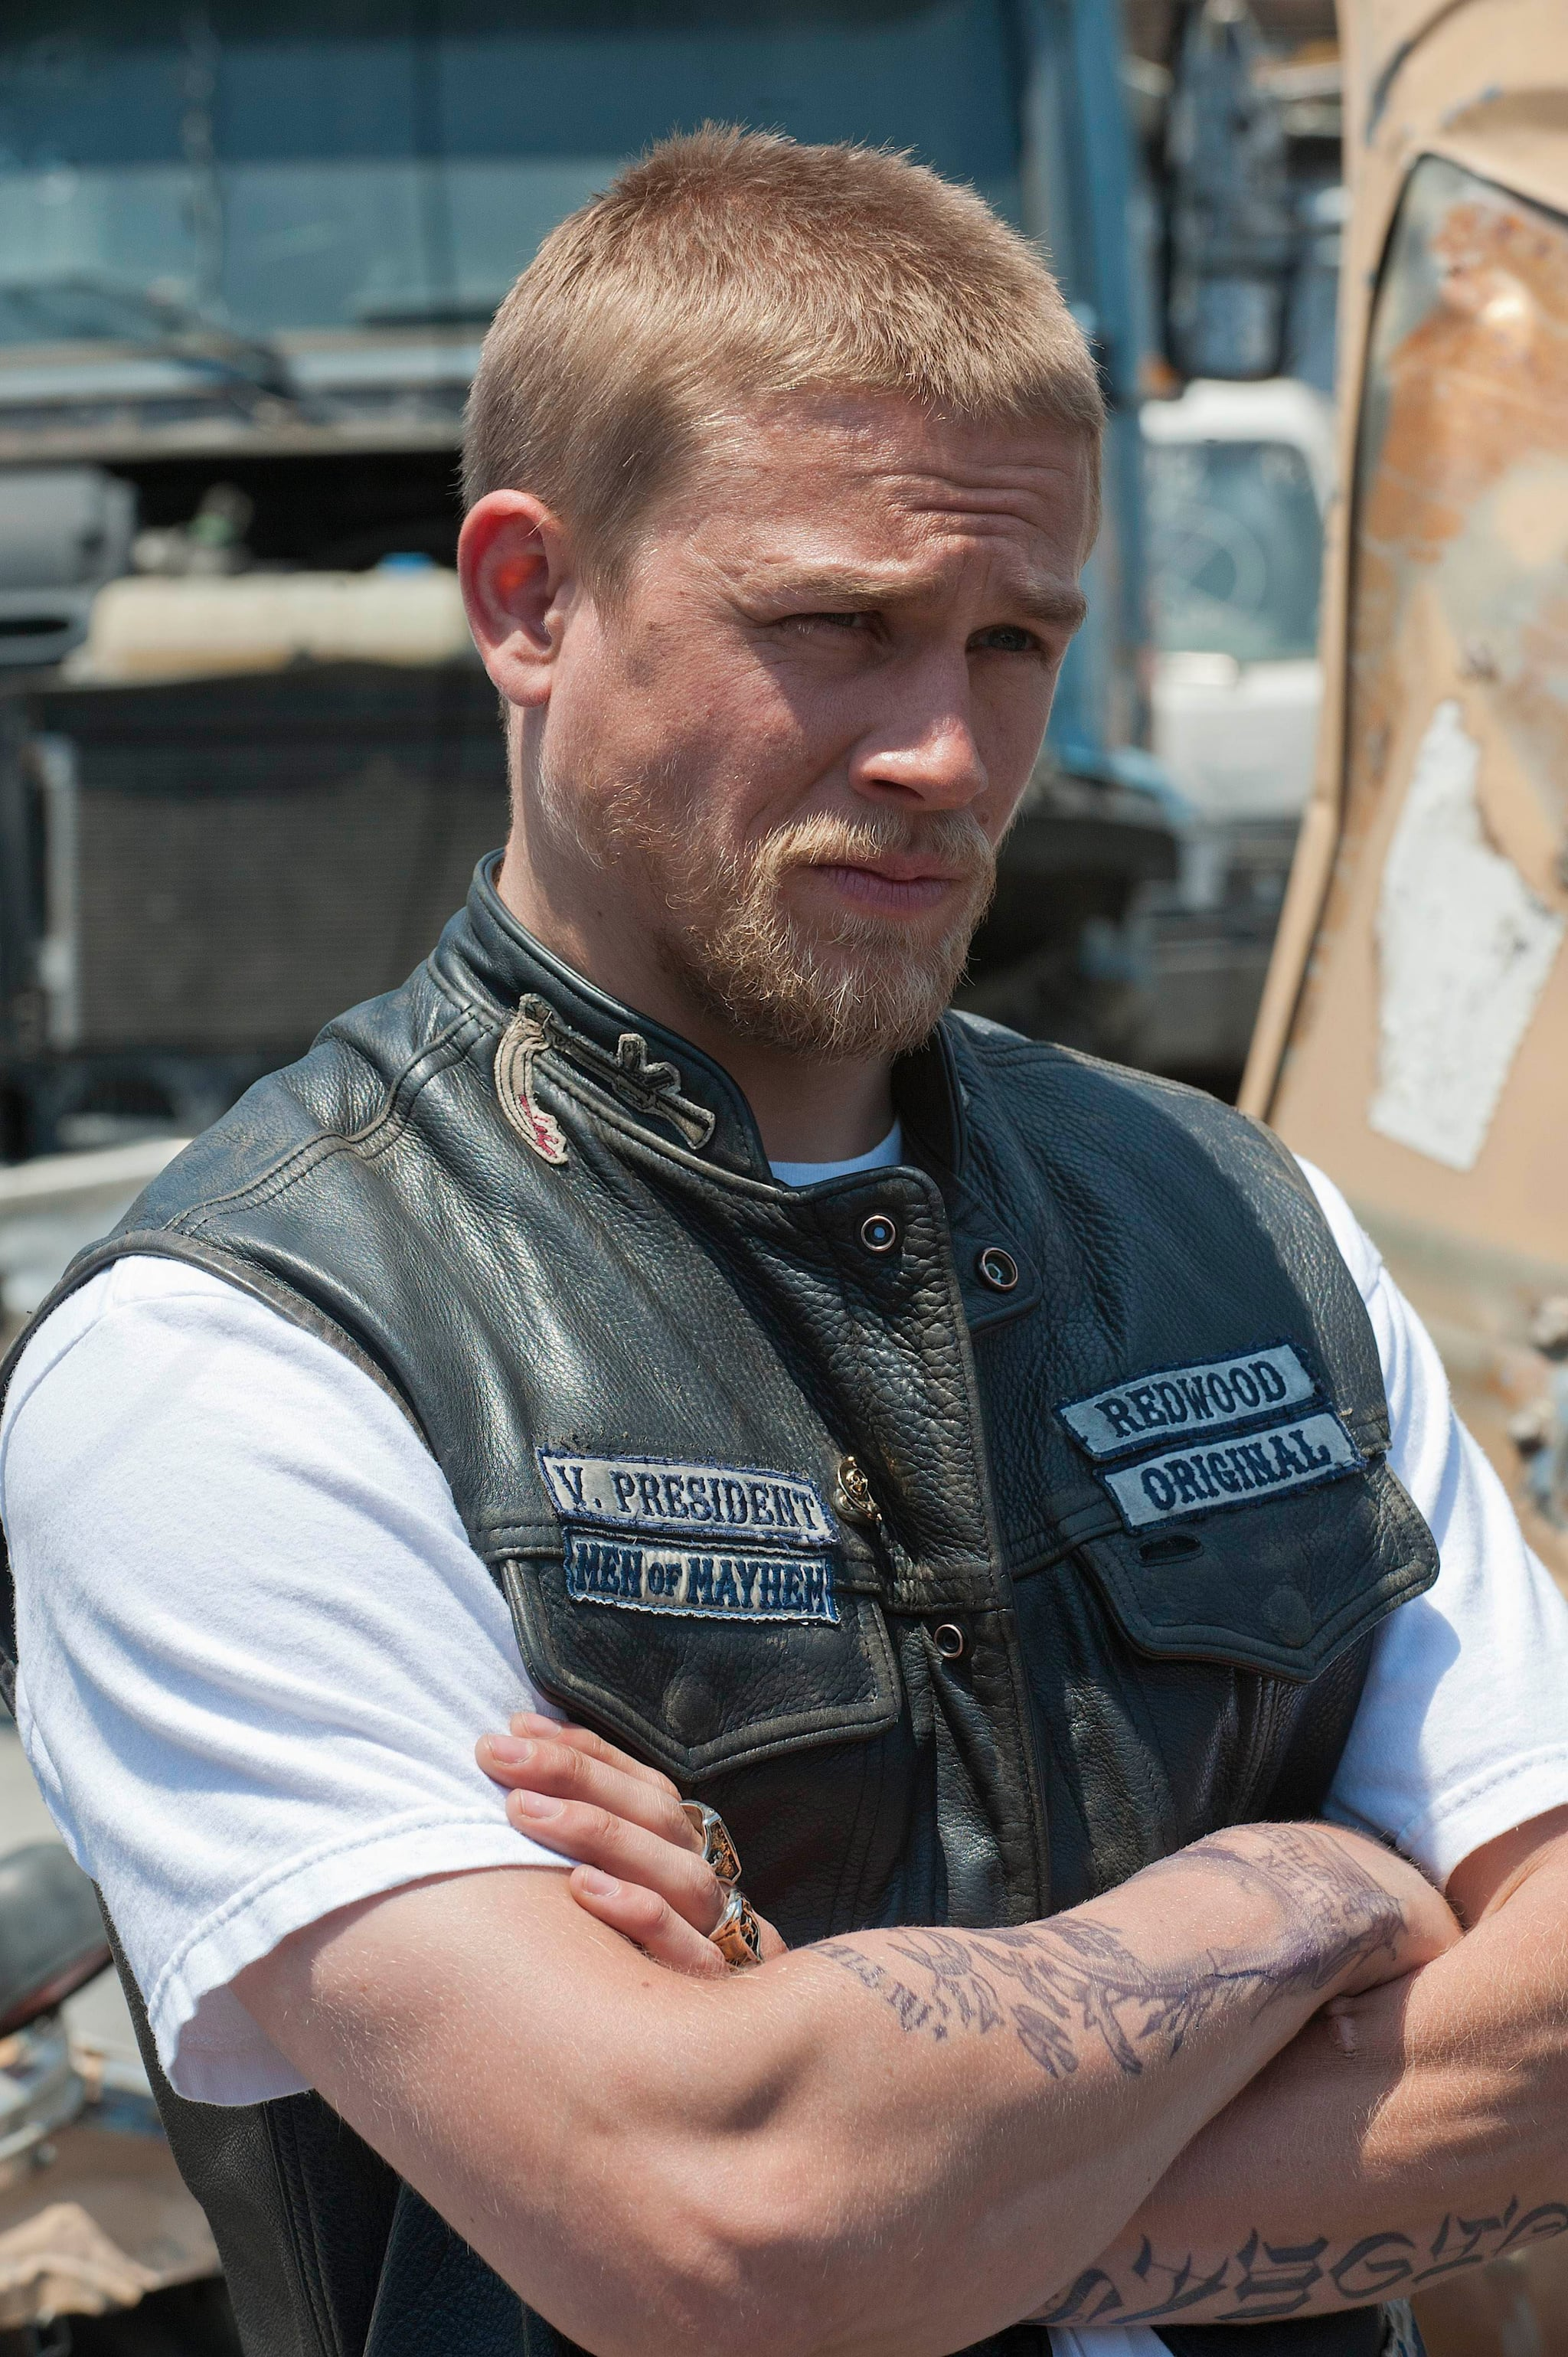 Movies Tv Music 25 Pictures Of Charlie Hunnam On Sons Of Anarchy That Are Nothing Short Of Badass Popsugar Entertainment Photo 17